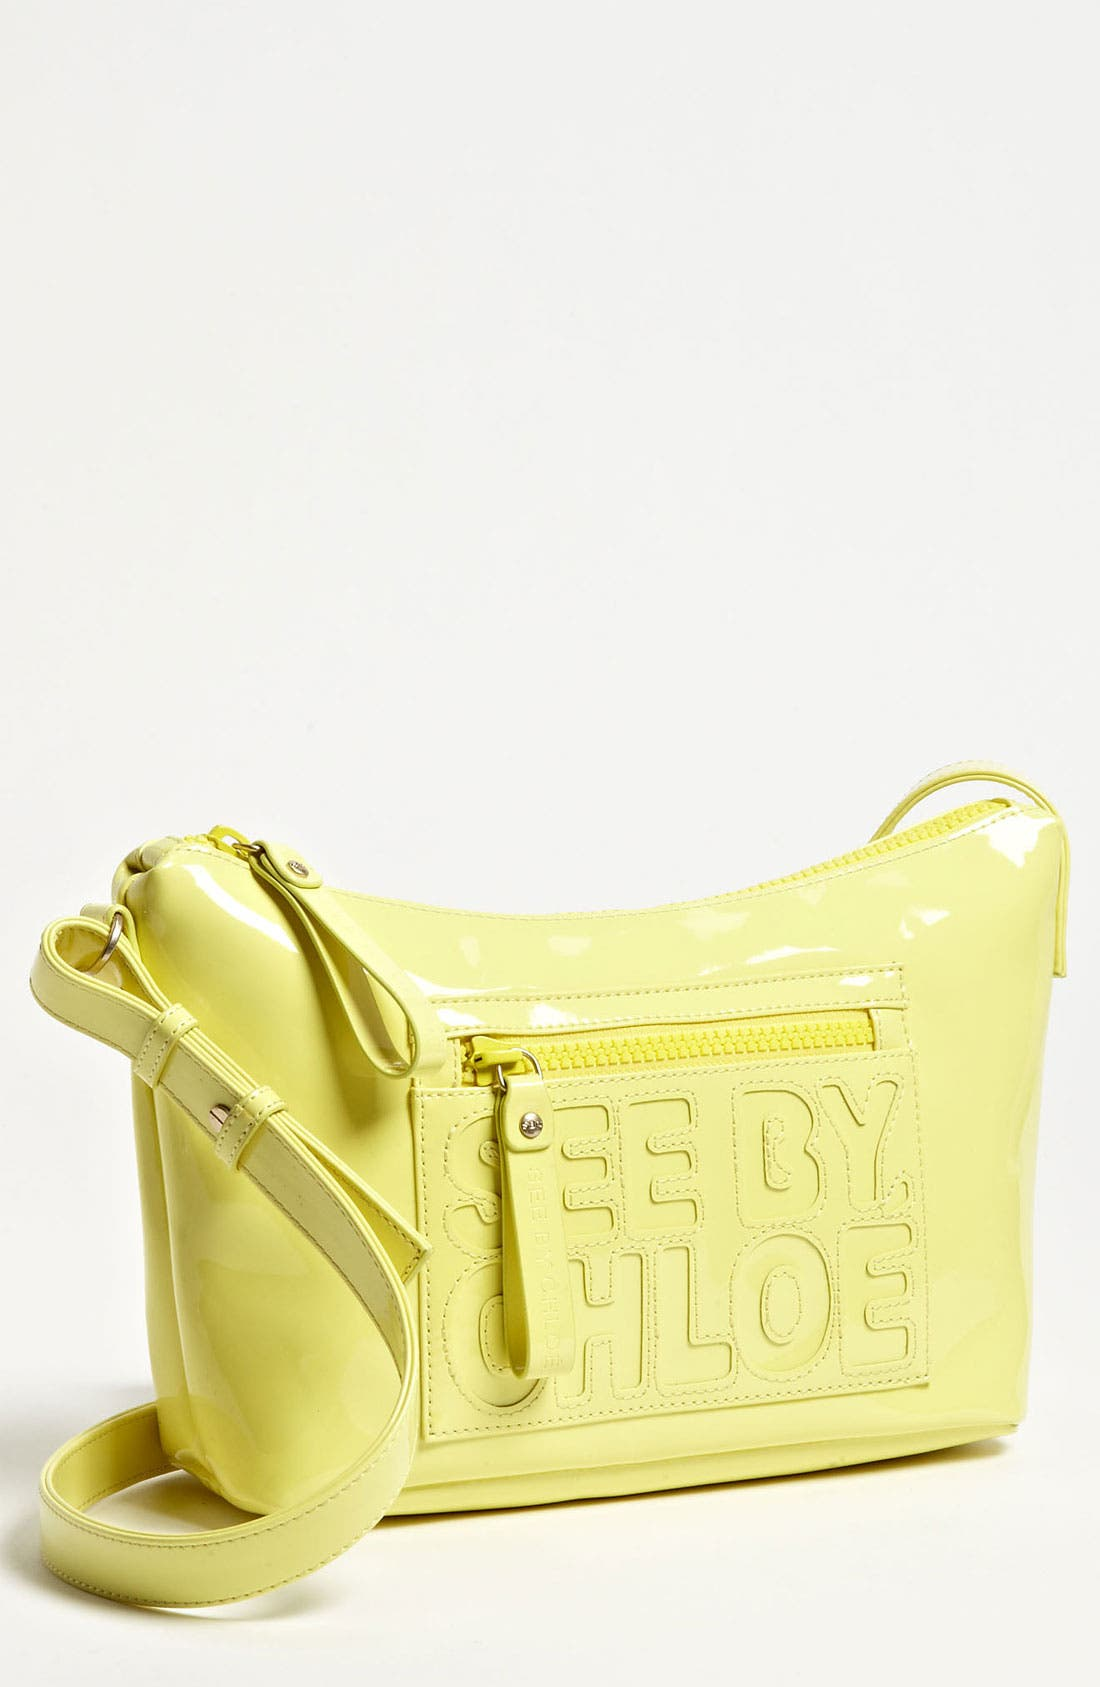 Alternate Image 1 Selected - See by Chloé 'Zip File' Crossbody Bag